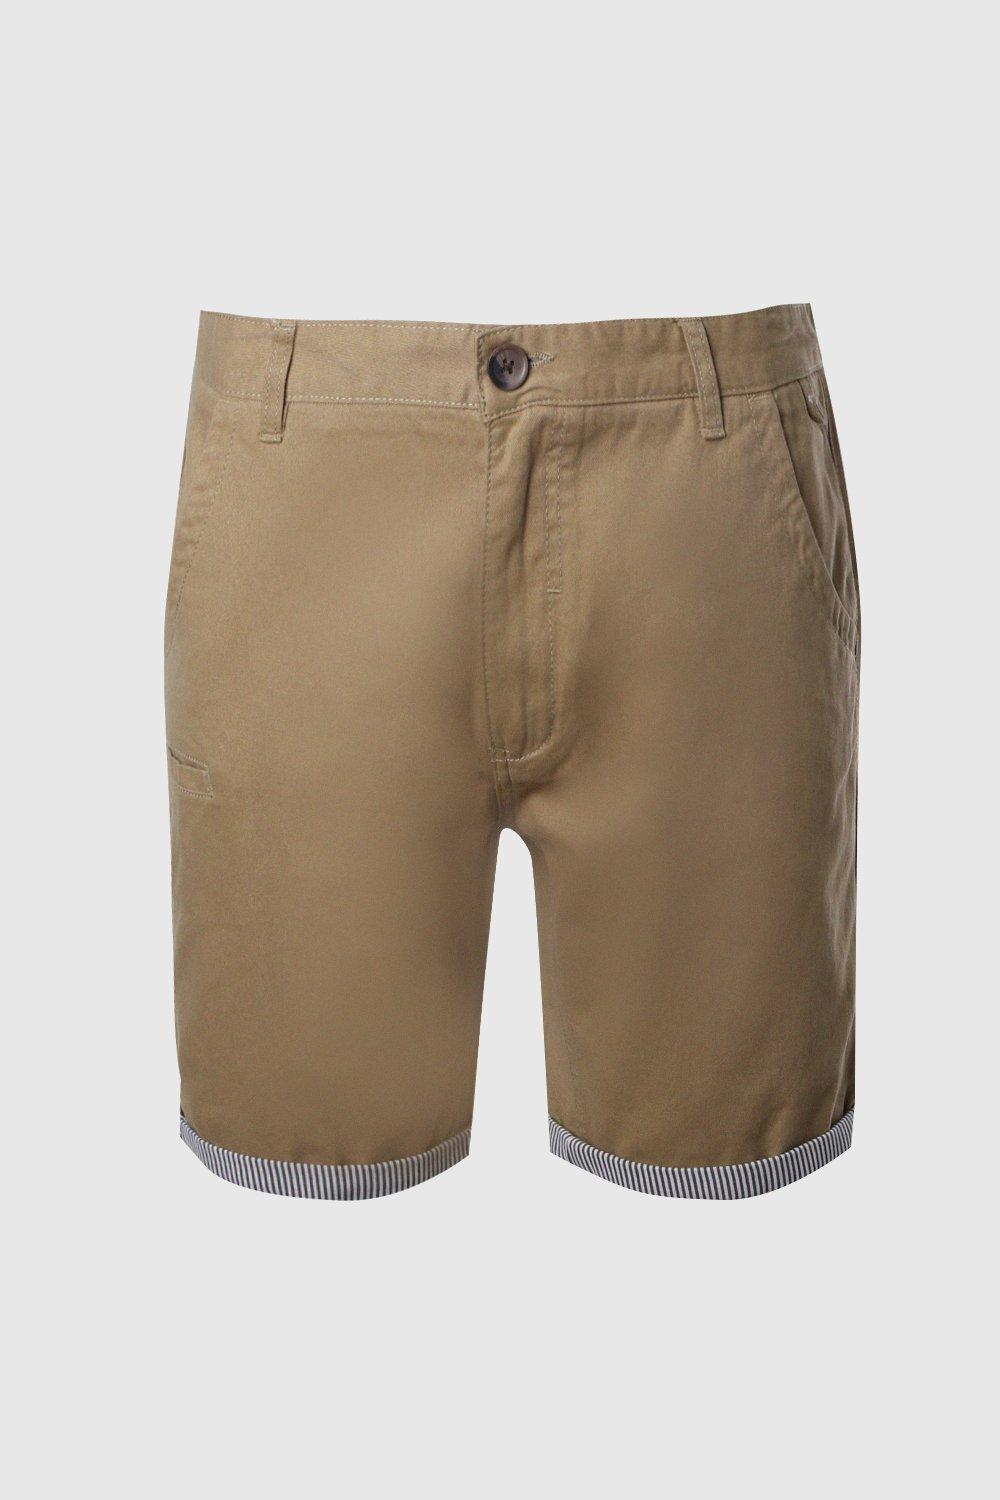 Stripe Turn stone Chino Shorts Up With EnwqCn60xa